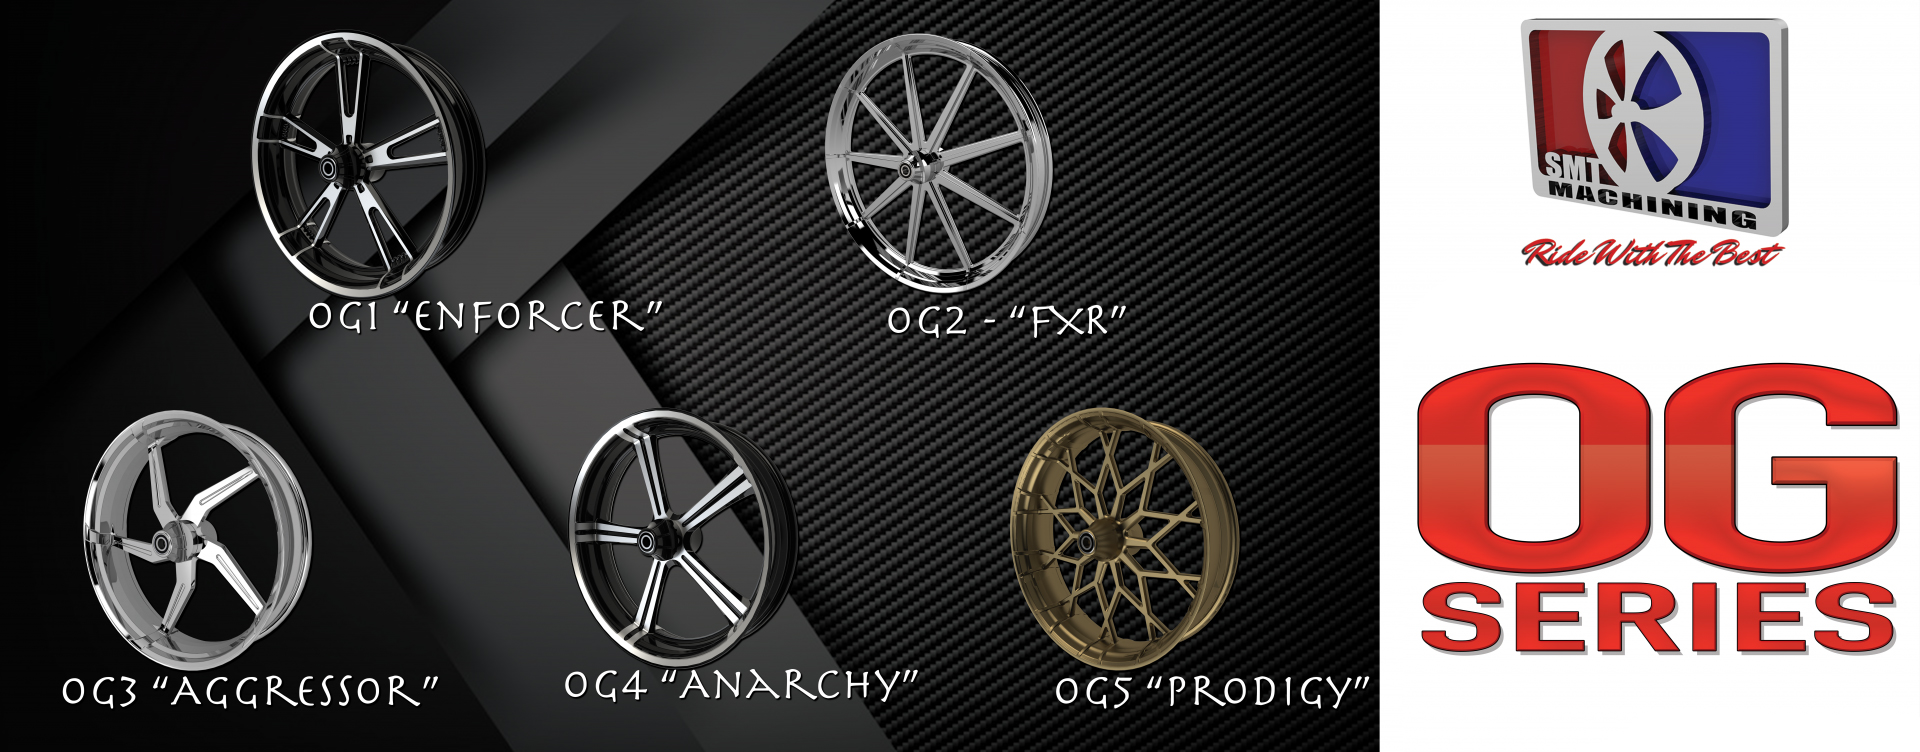 OG series motorcycle wheels